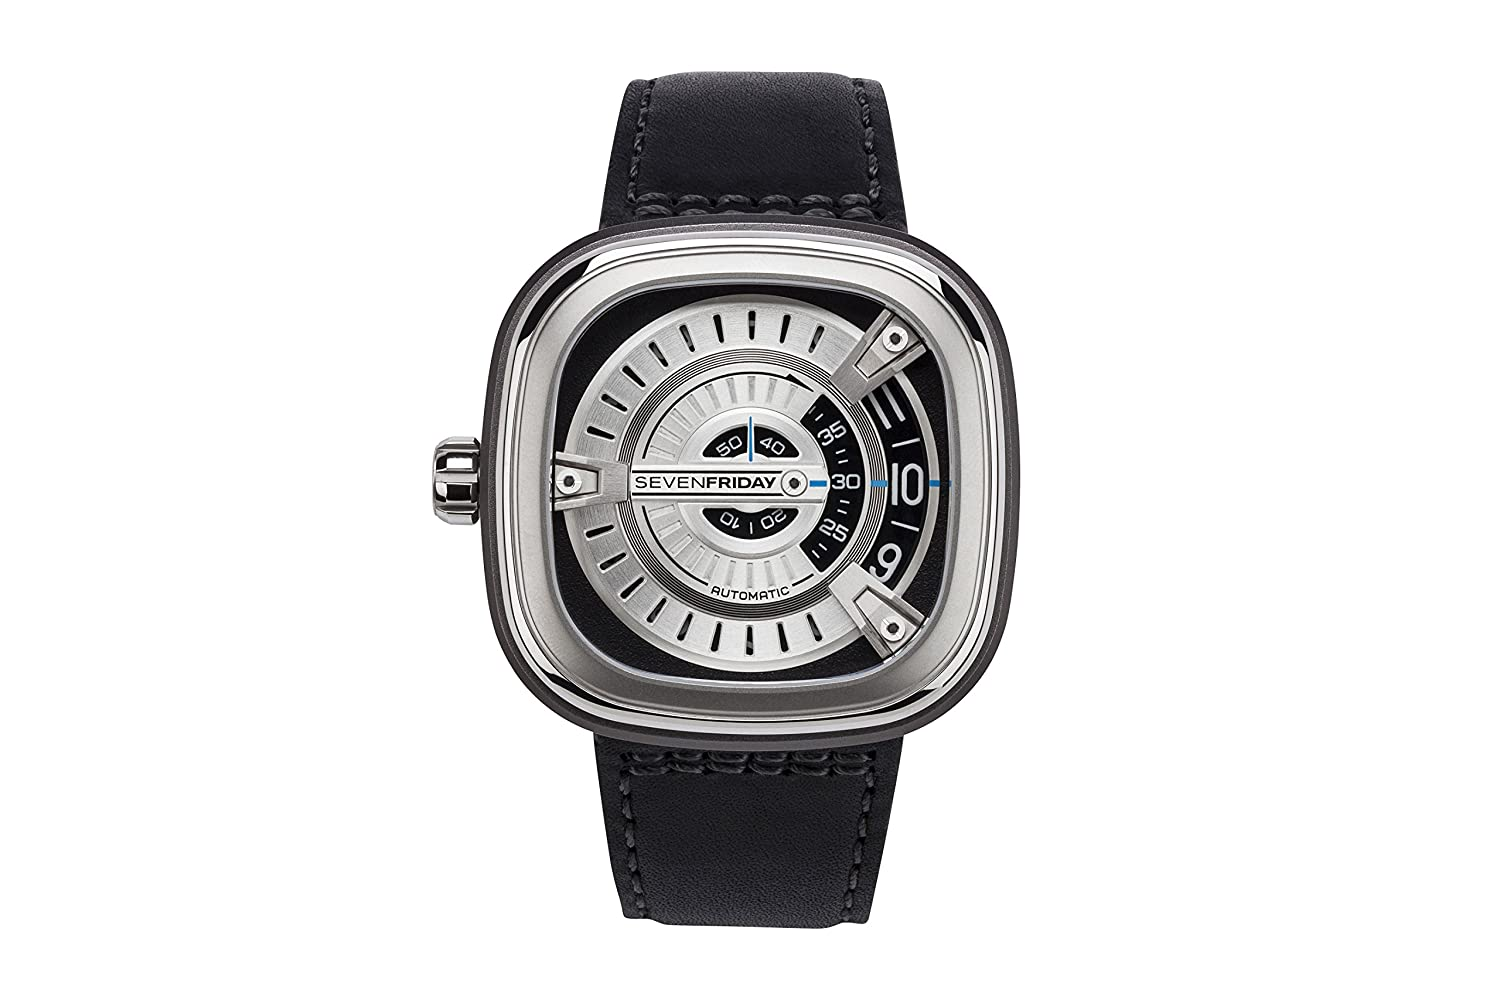 SEVENFRIDAY (Seven Friday) (H6 DLT) Mens Watch MSeries tonoface Watch 4562320464055, Silver Black, Adjustable